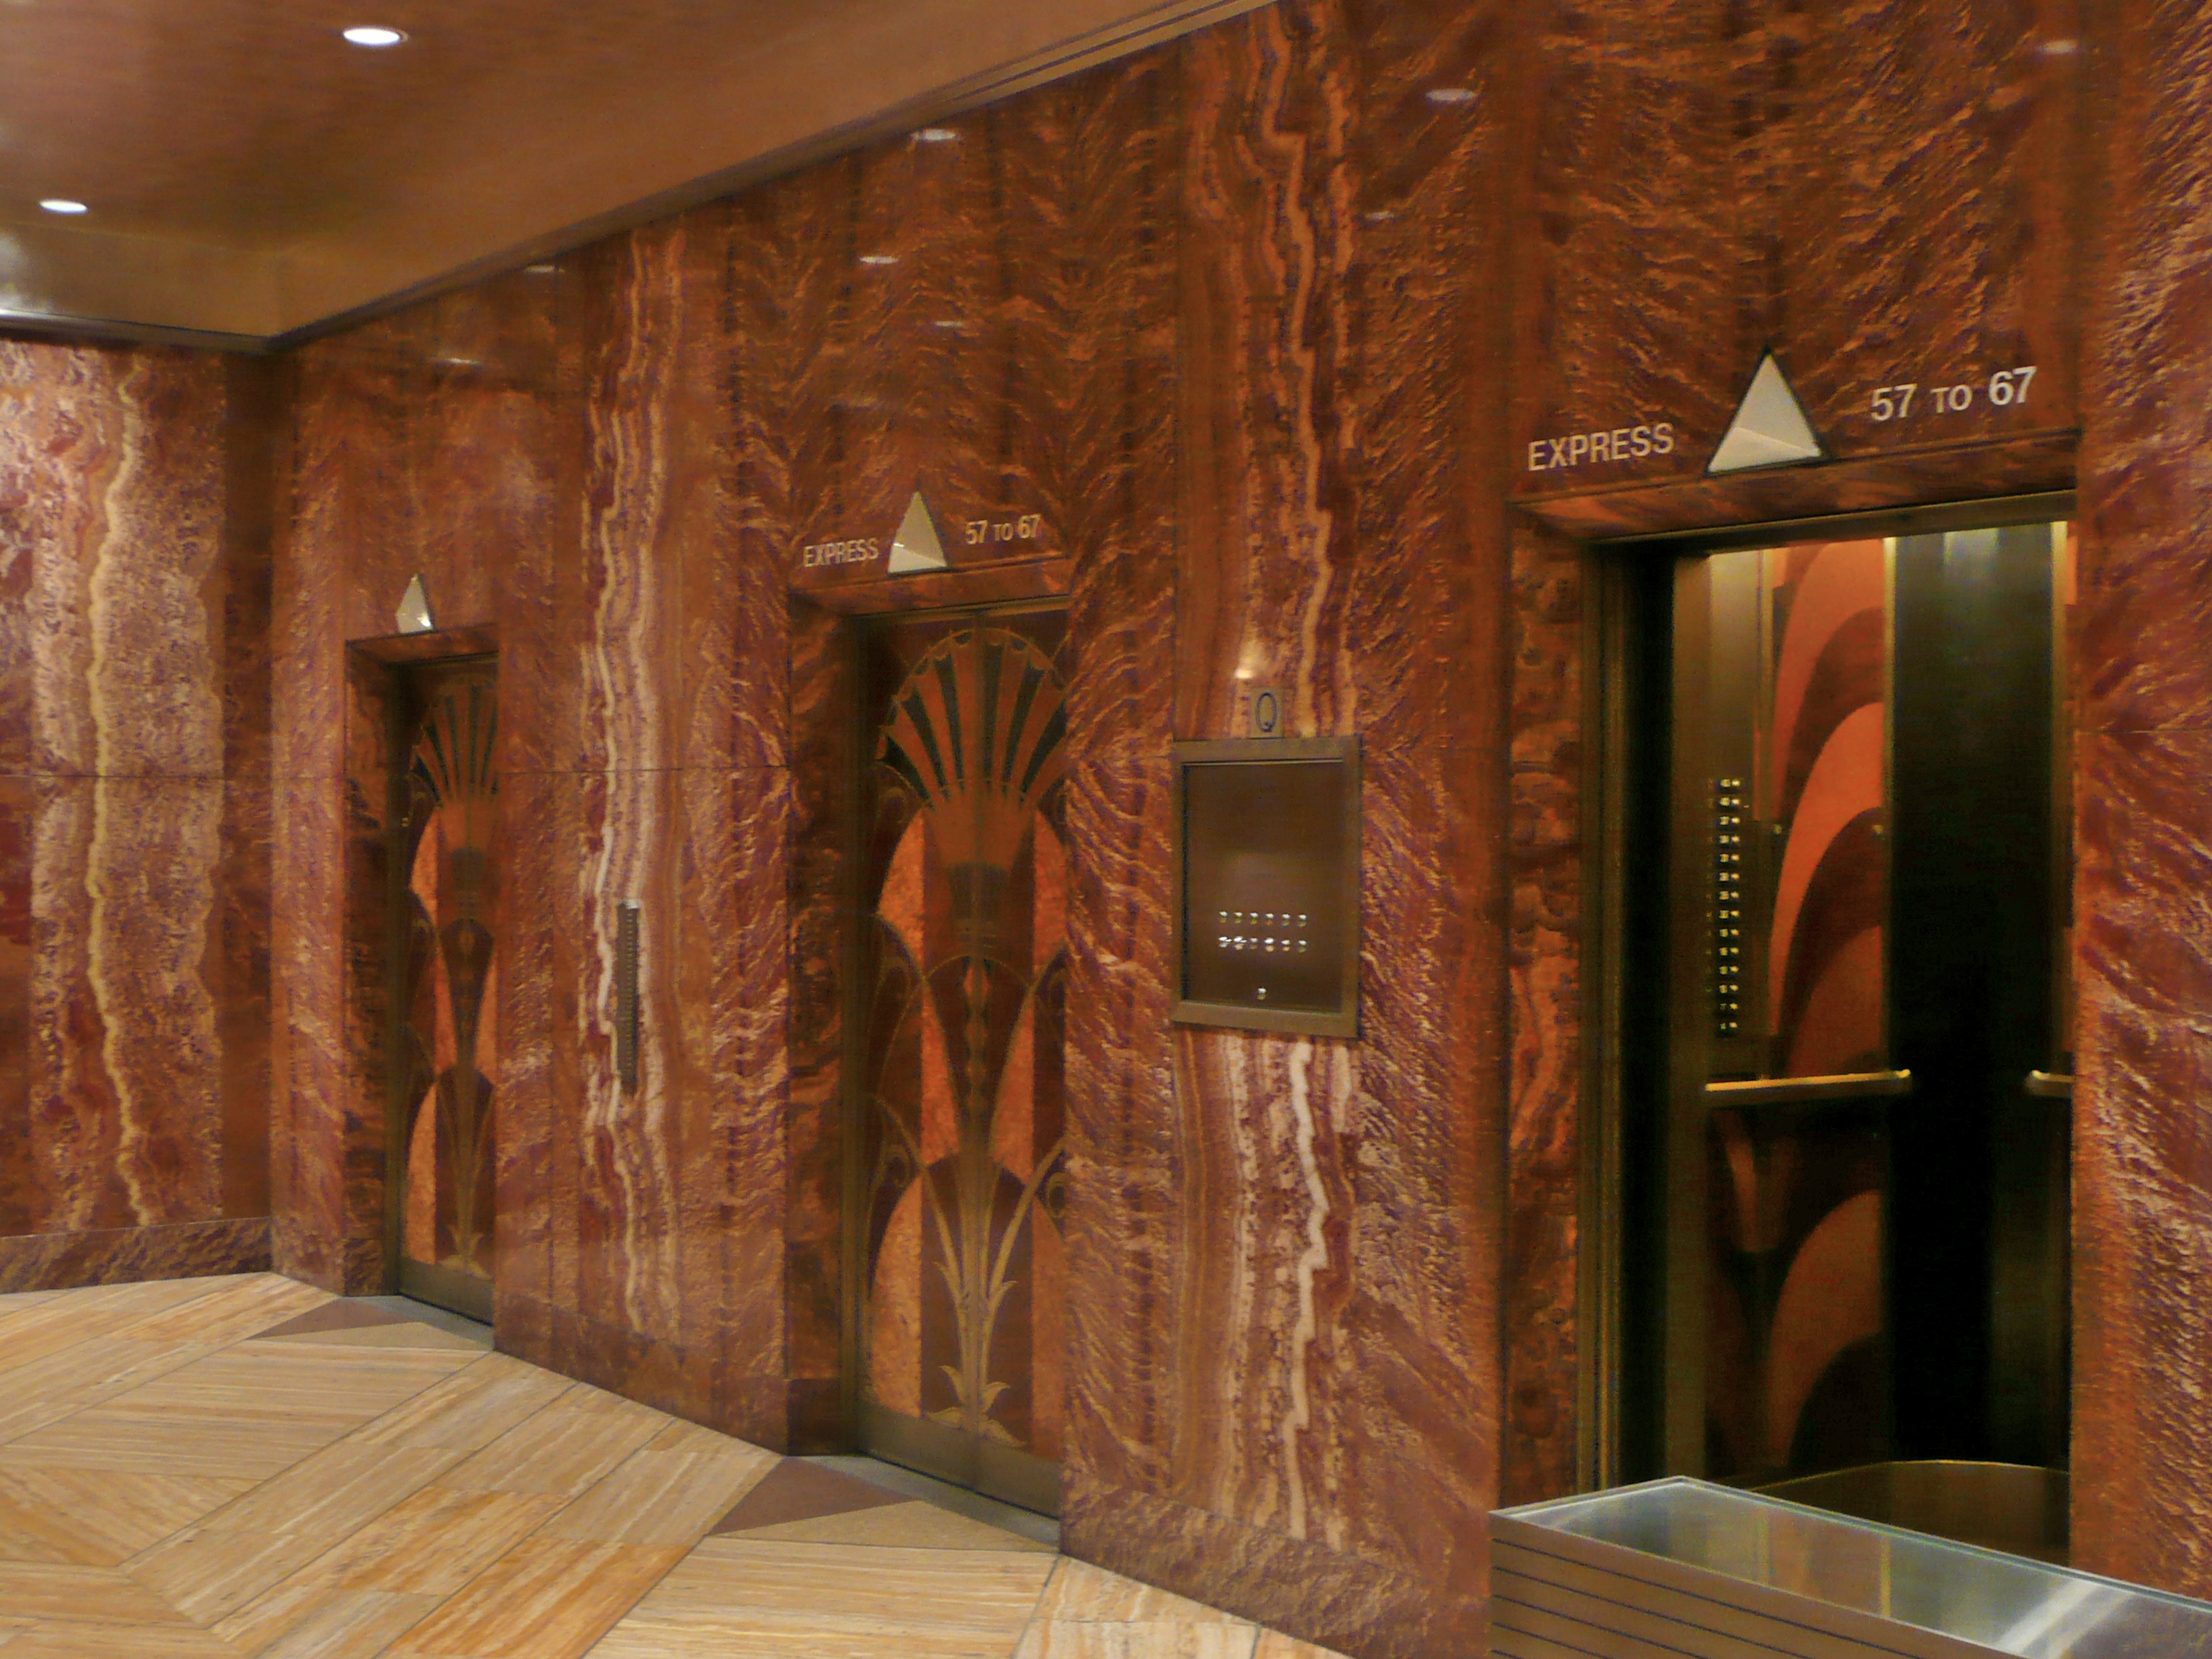 File chrysler building interior 3 jpg wikimedia commons for Interior images